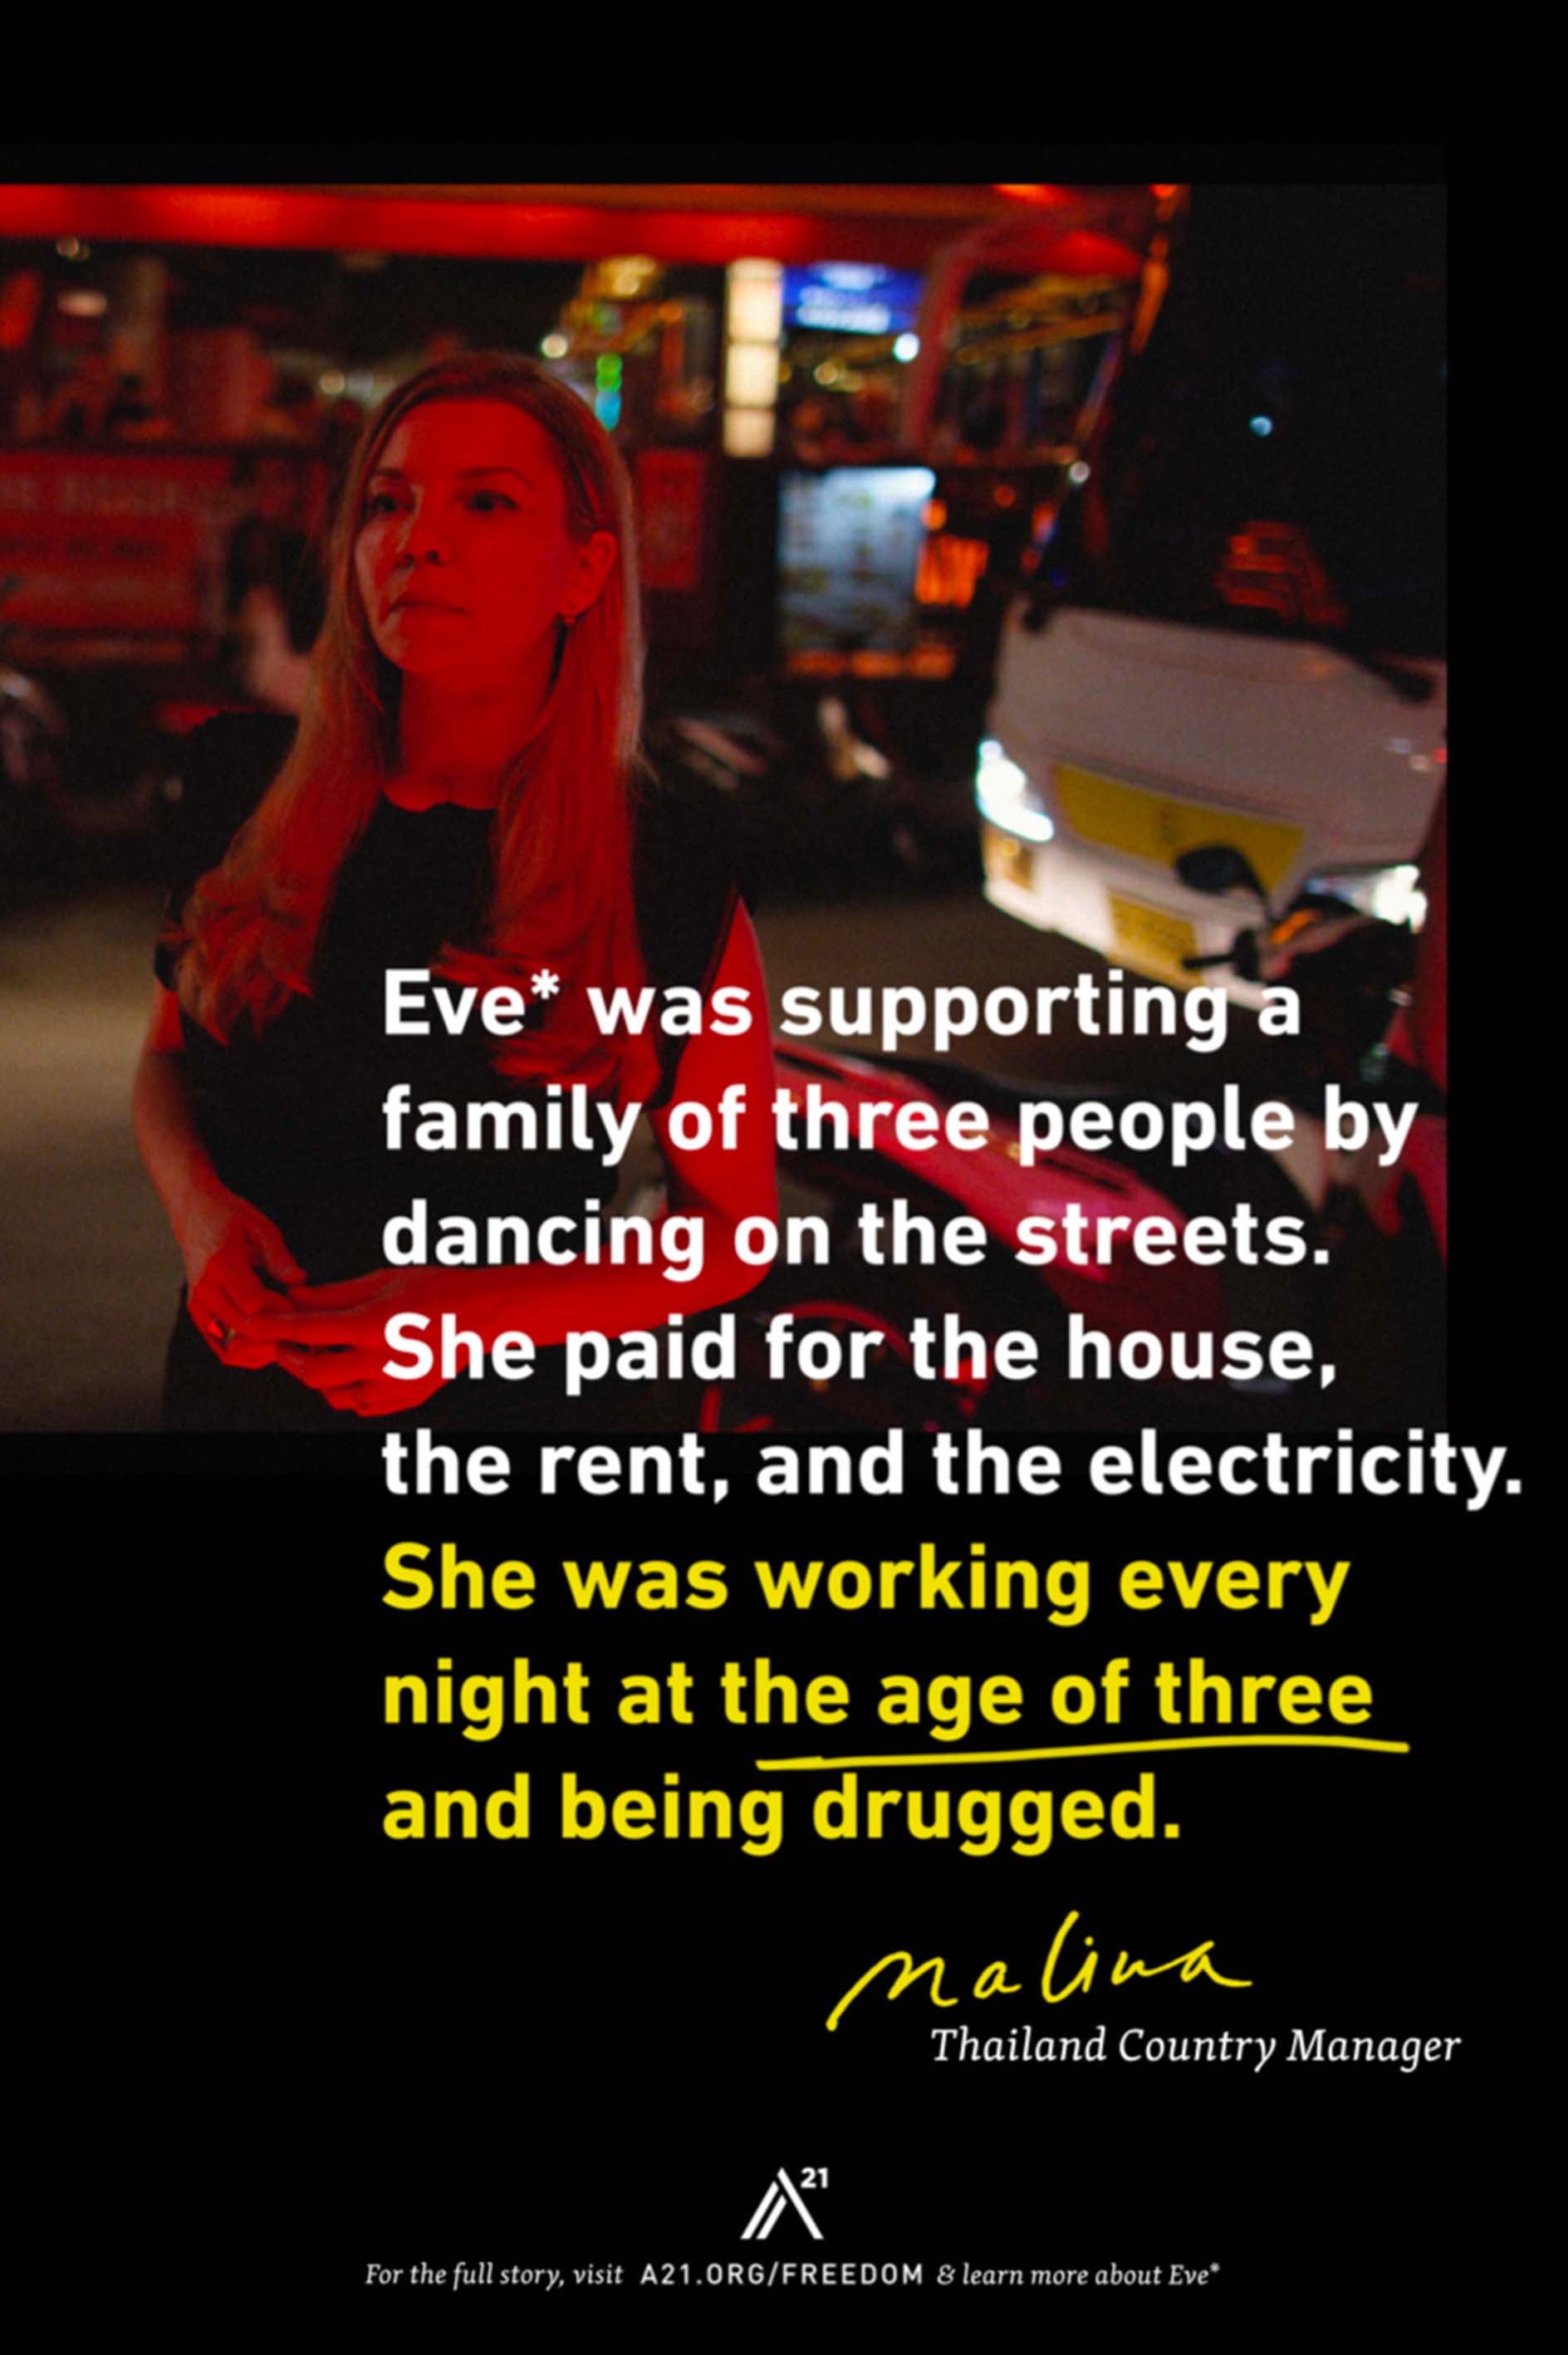 Poster 5: Eve* was supporting a family of three people by dancing on the streets. She paid for the house, the rent, and the electricity. She was working every night at the age of three and being drugged. Malina, Thailand Country Manager